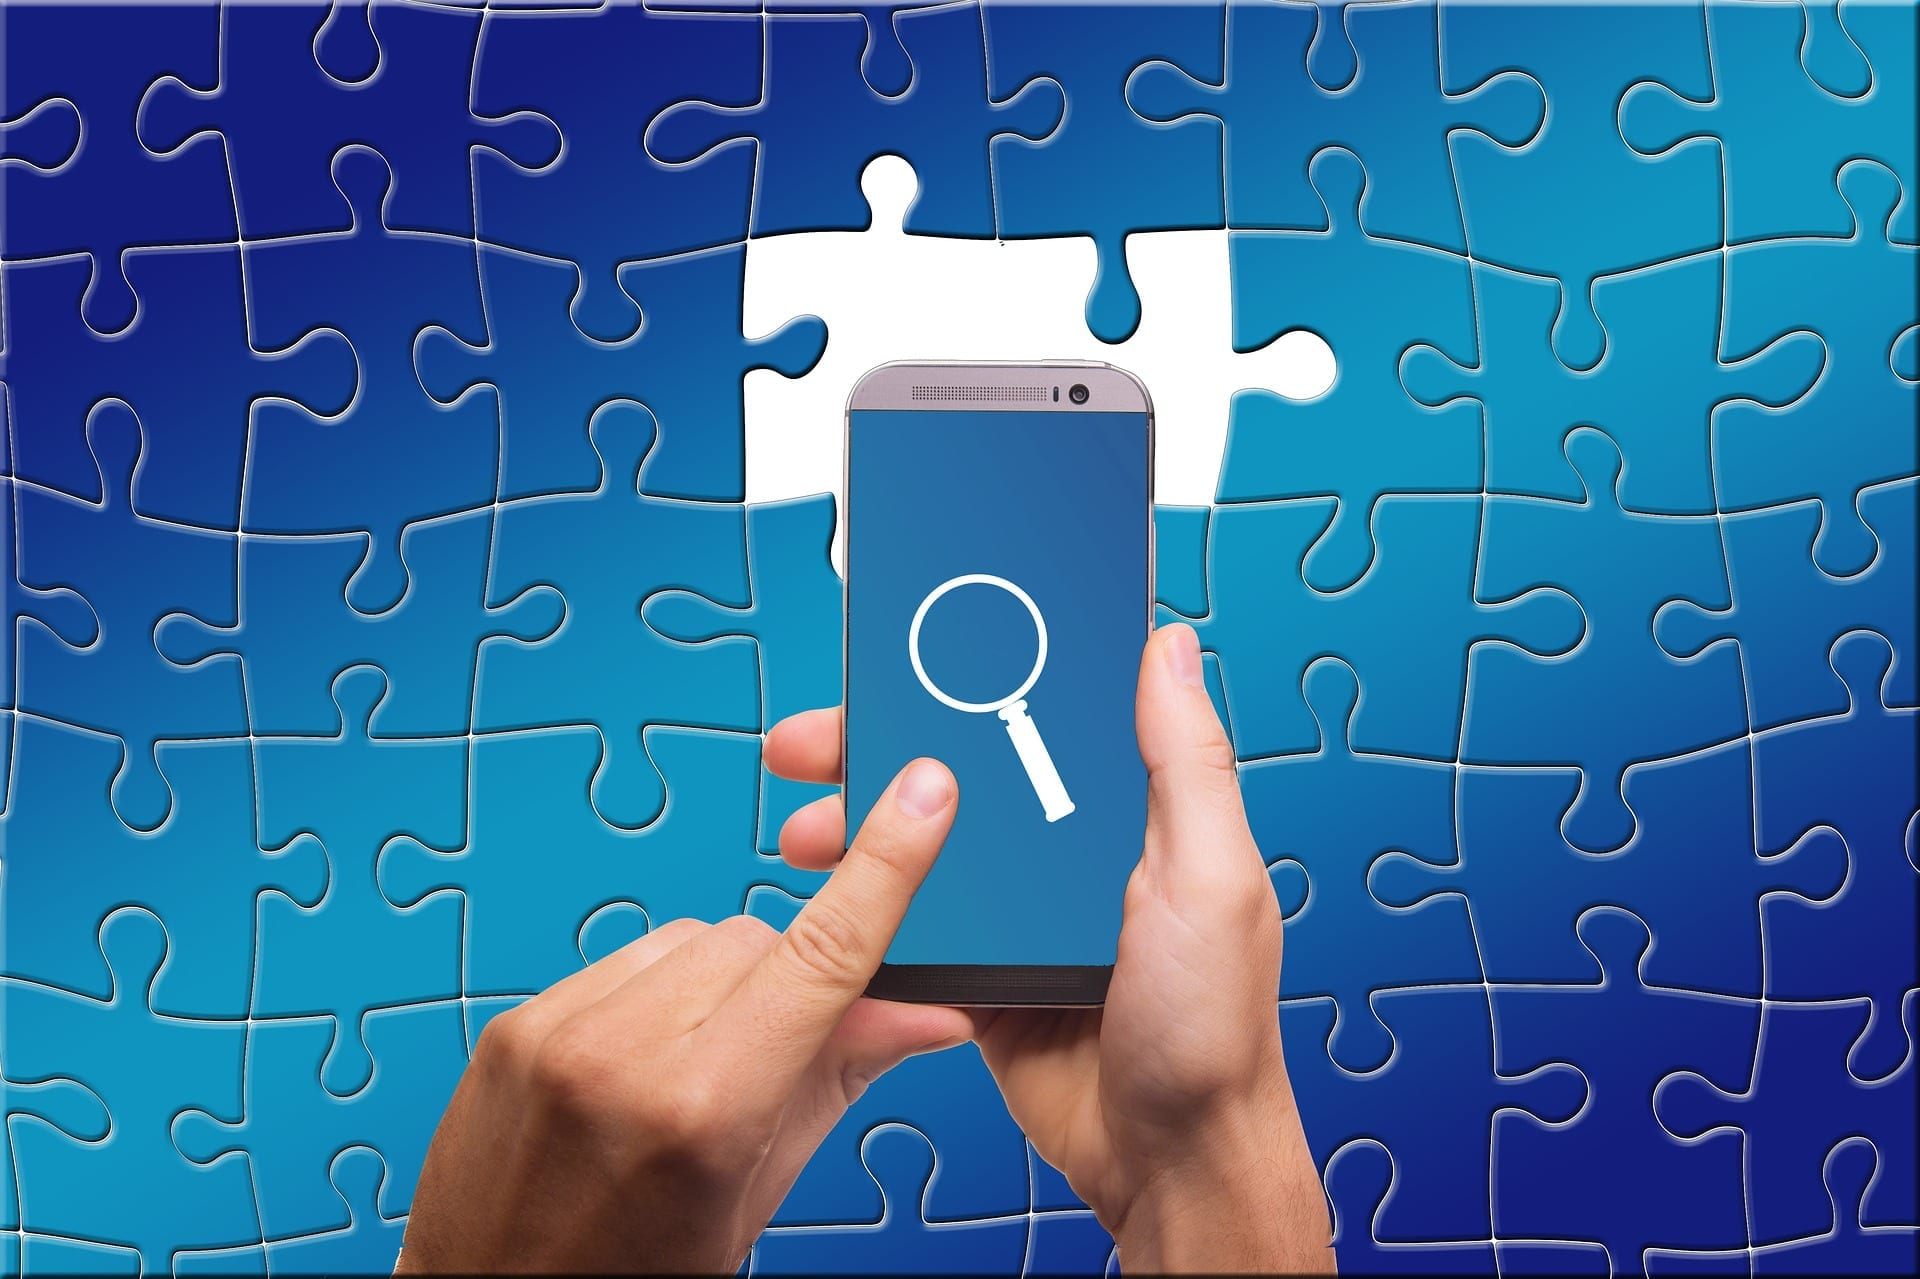 Mobile Emulators represented by phone and missing puzzle pieces